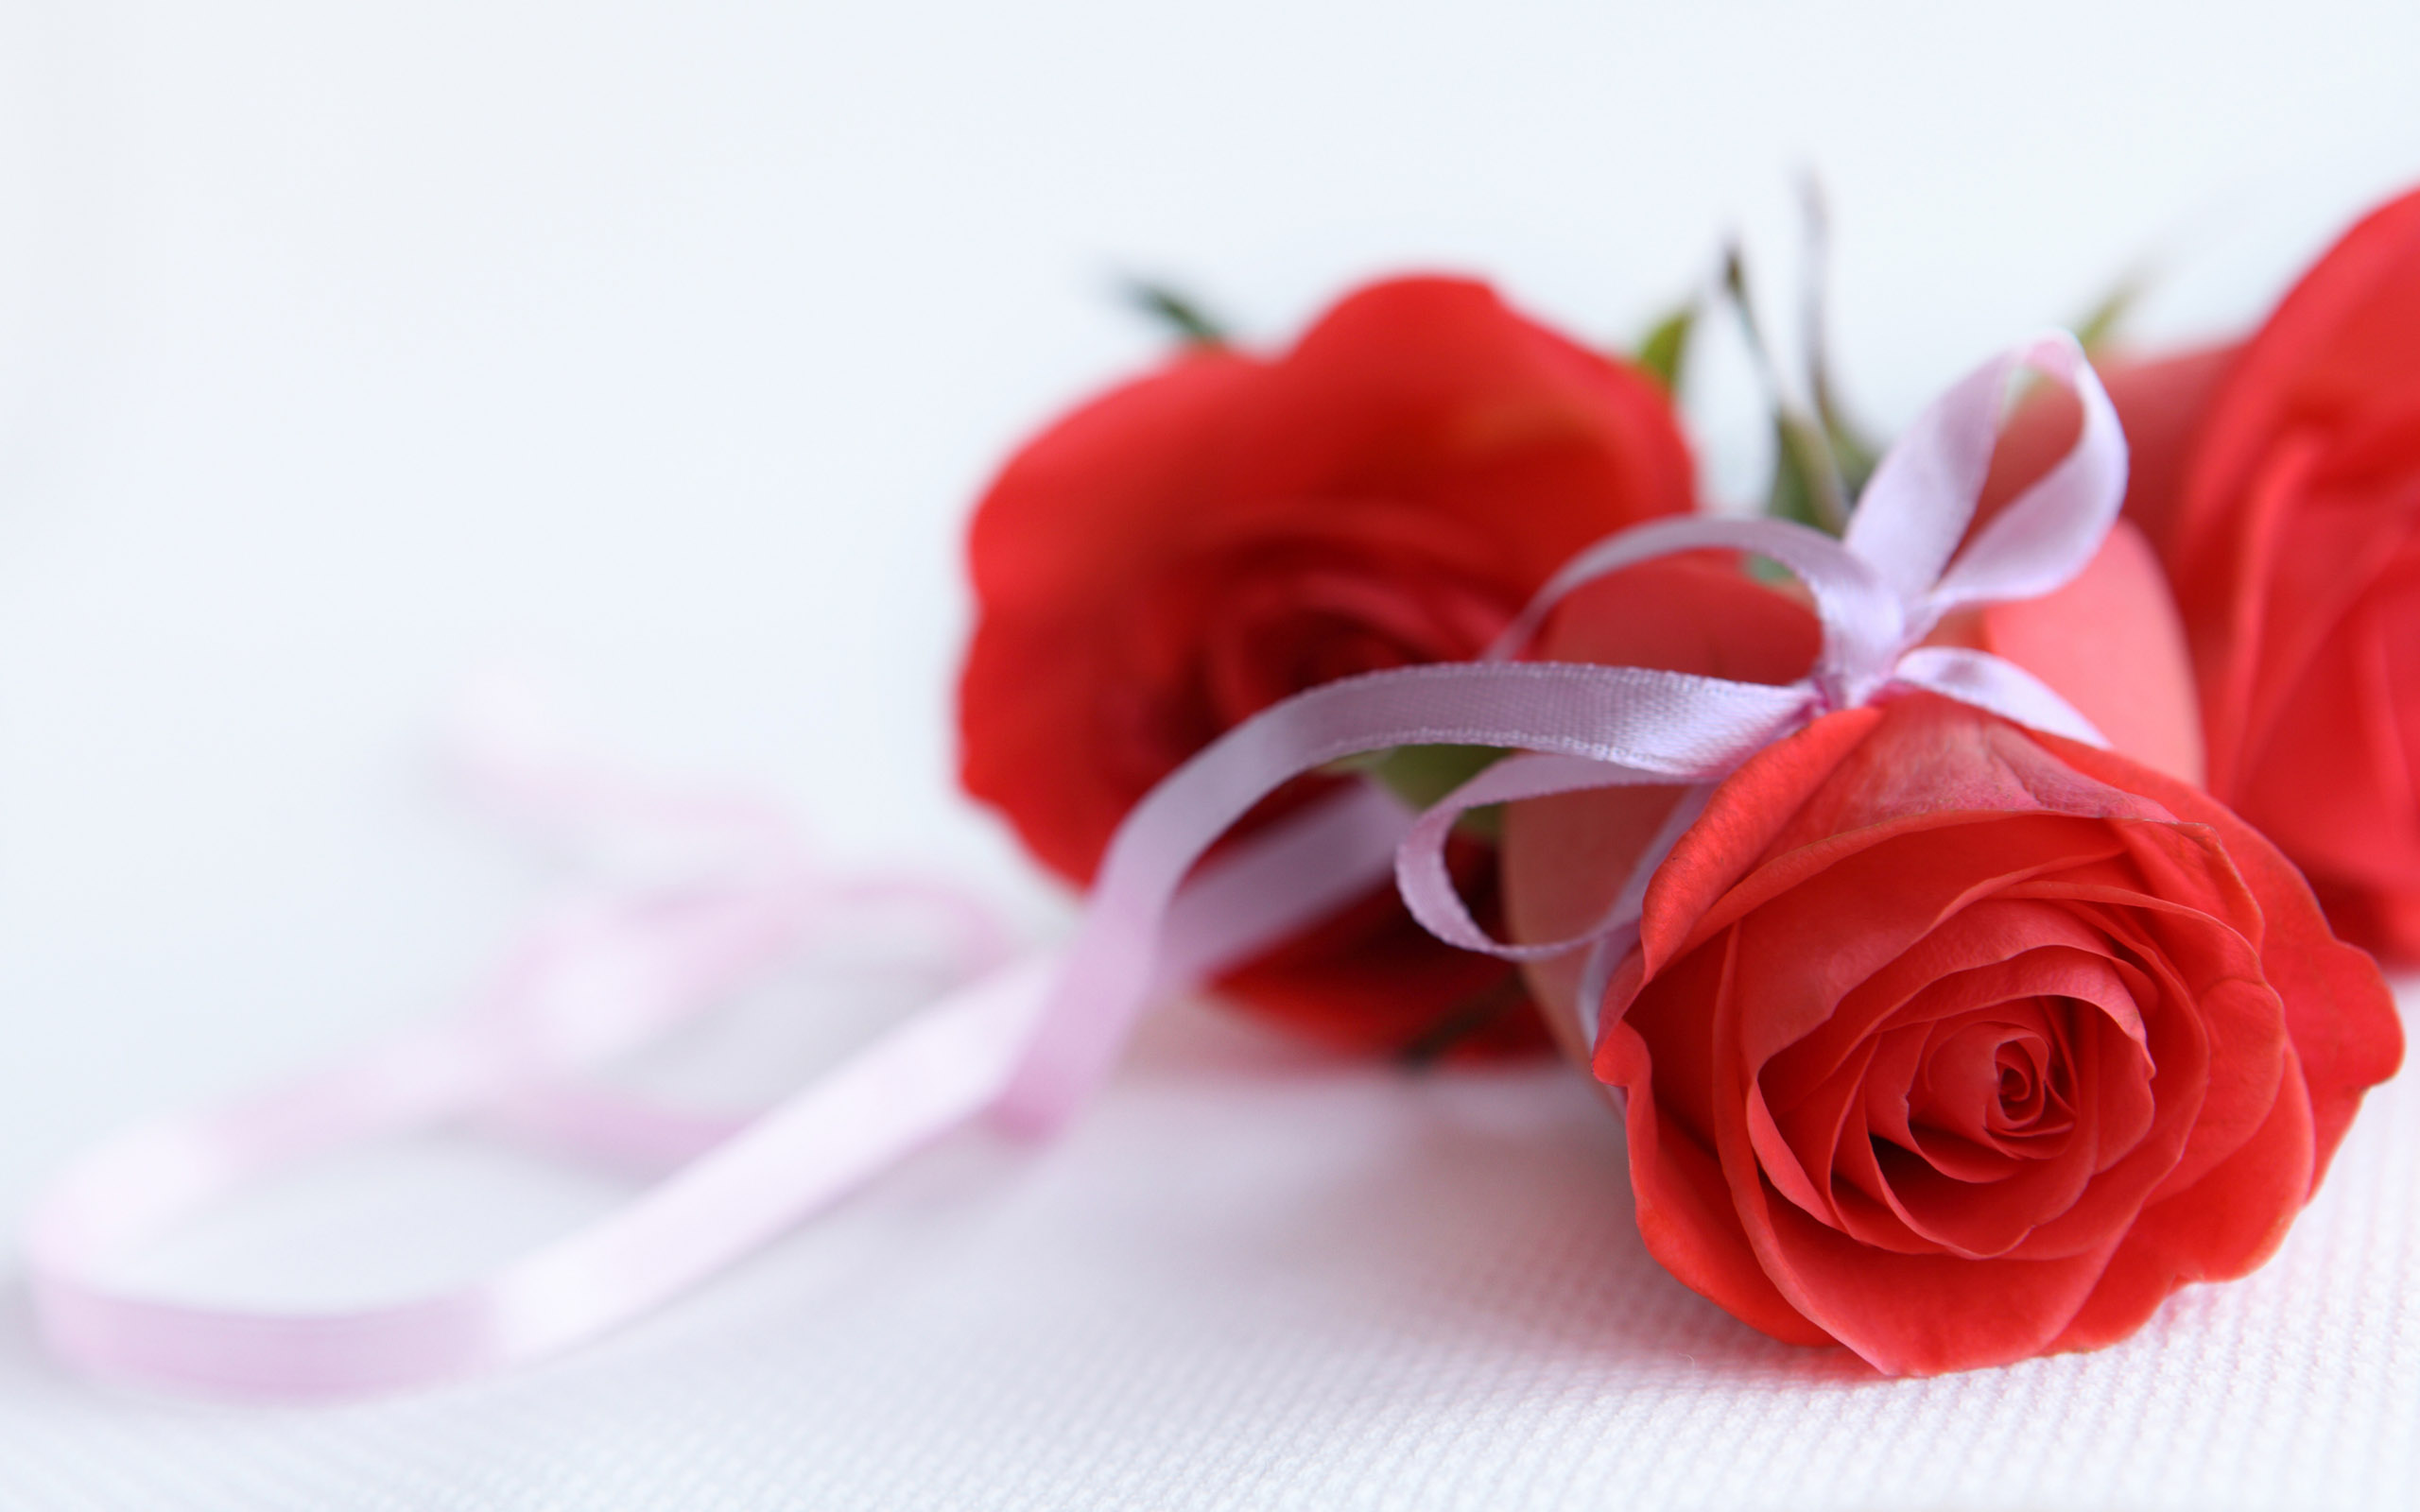 red rose wedding gift flower whatsapp images free downlod